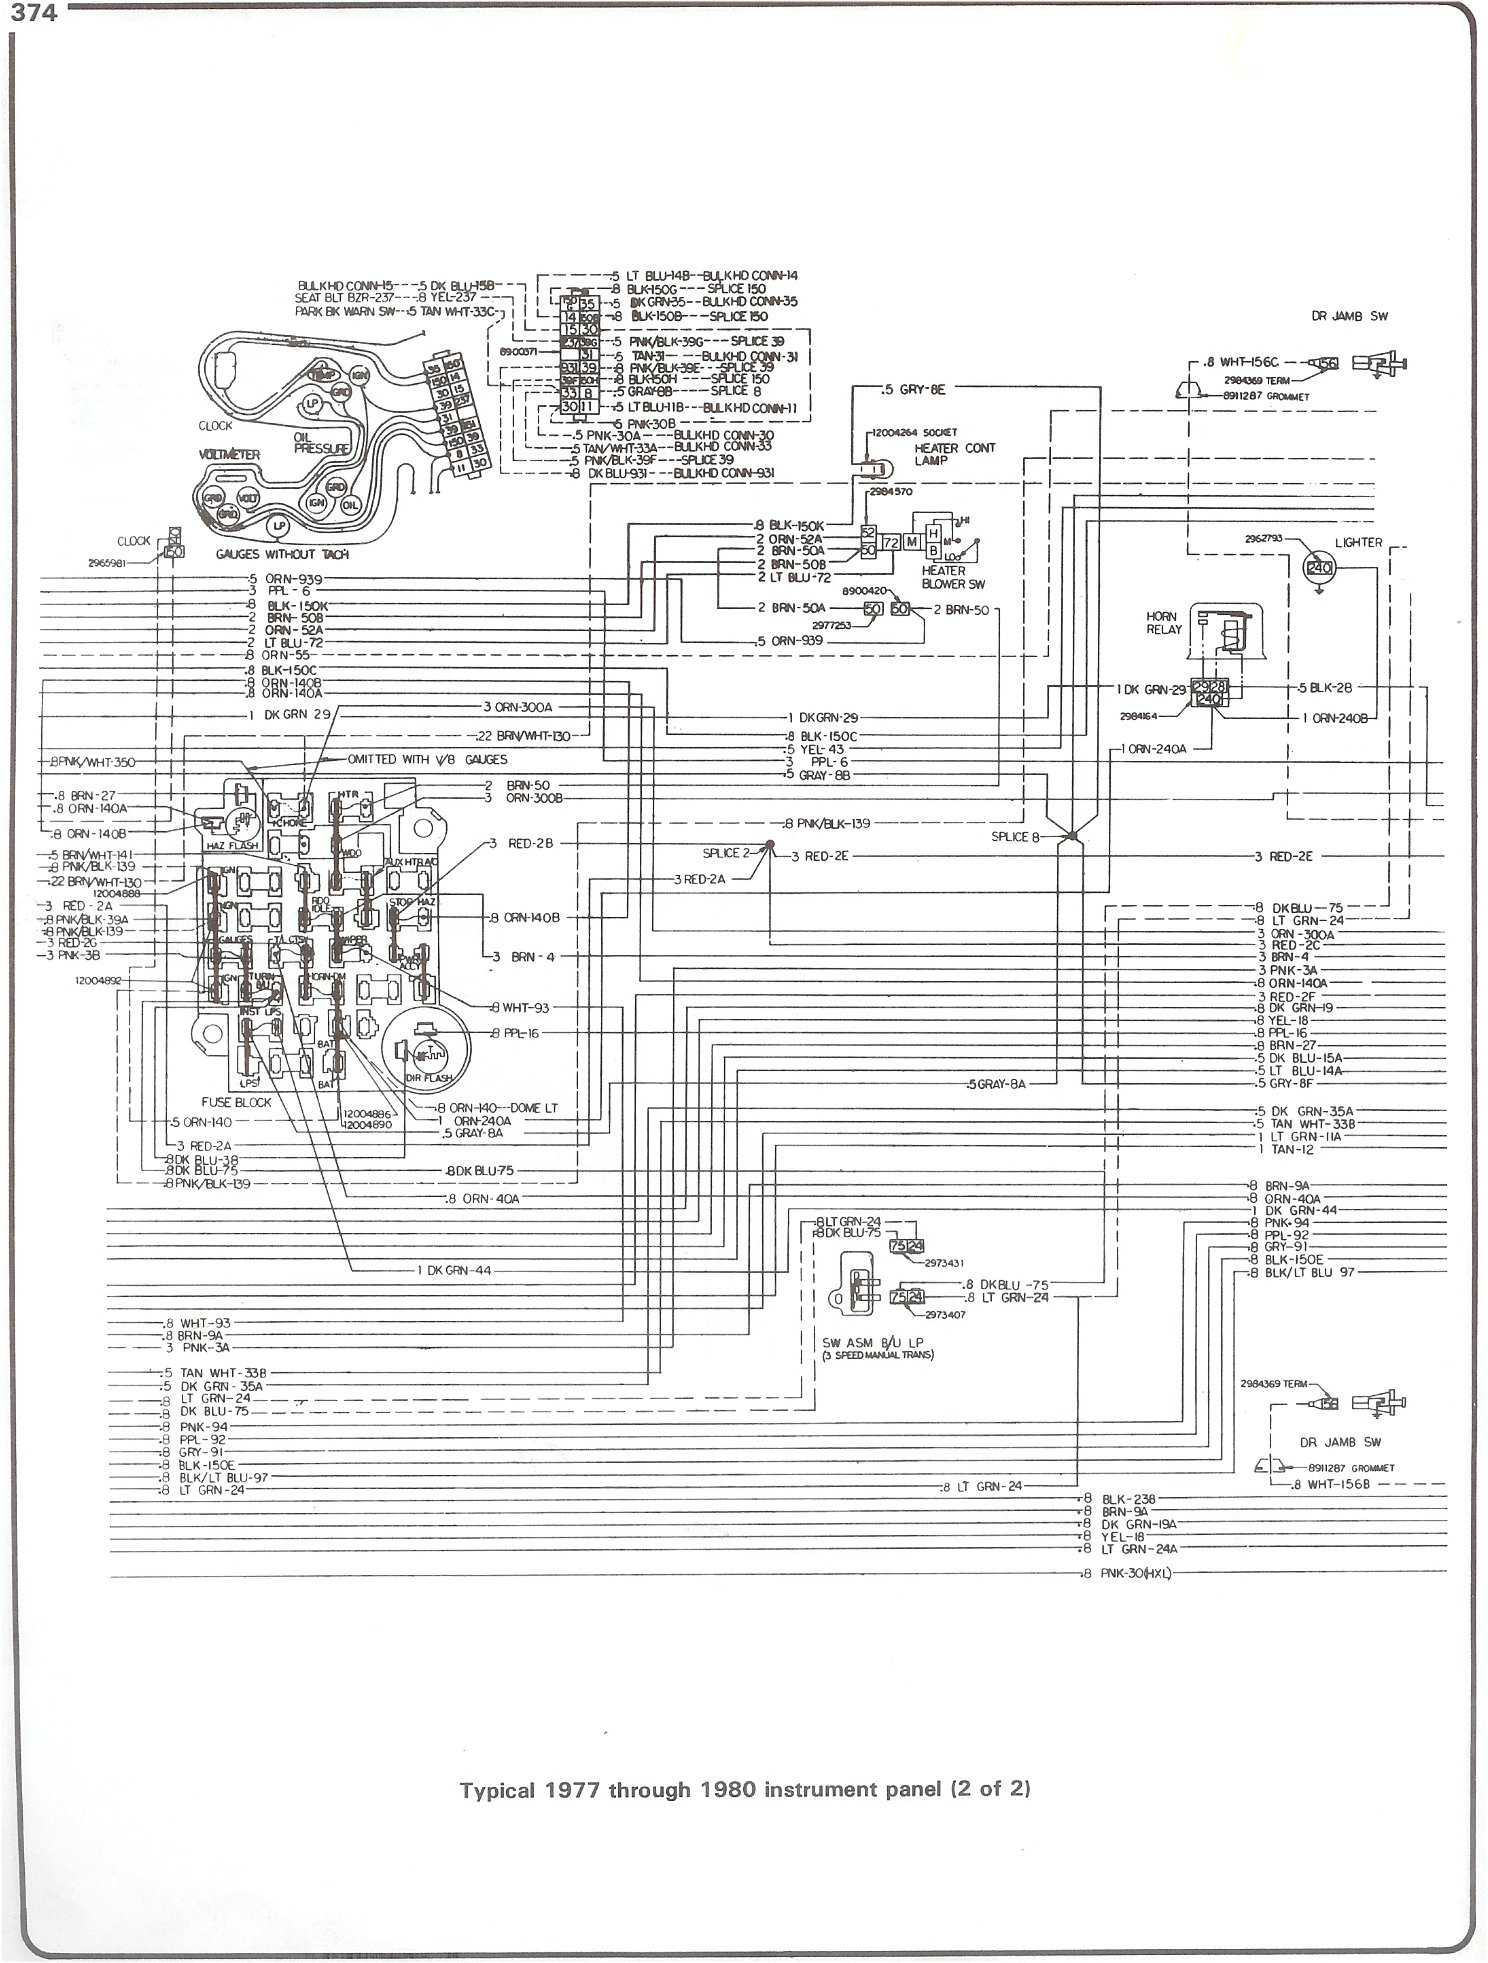 77 80_instrument_pg2 complete 73 87 wiring diagrams 73-87 Chevy Wiring Diagrams Site at reclaimingppi.co